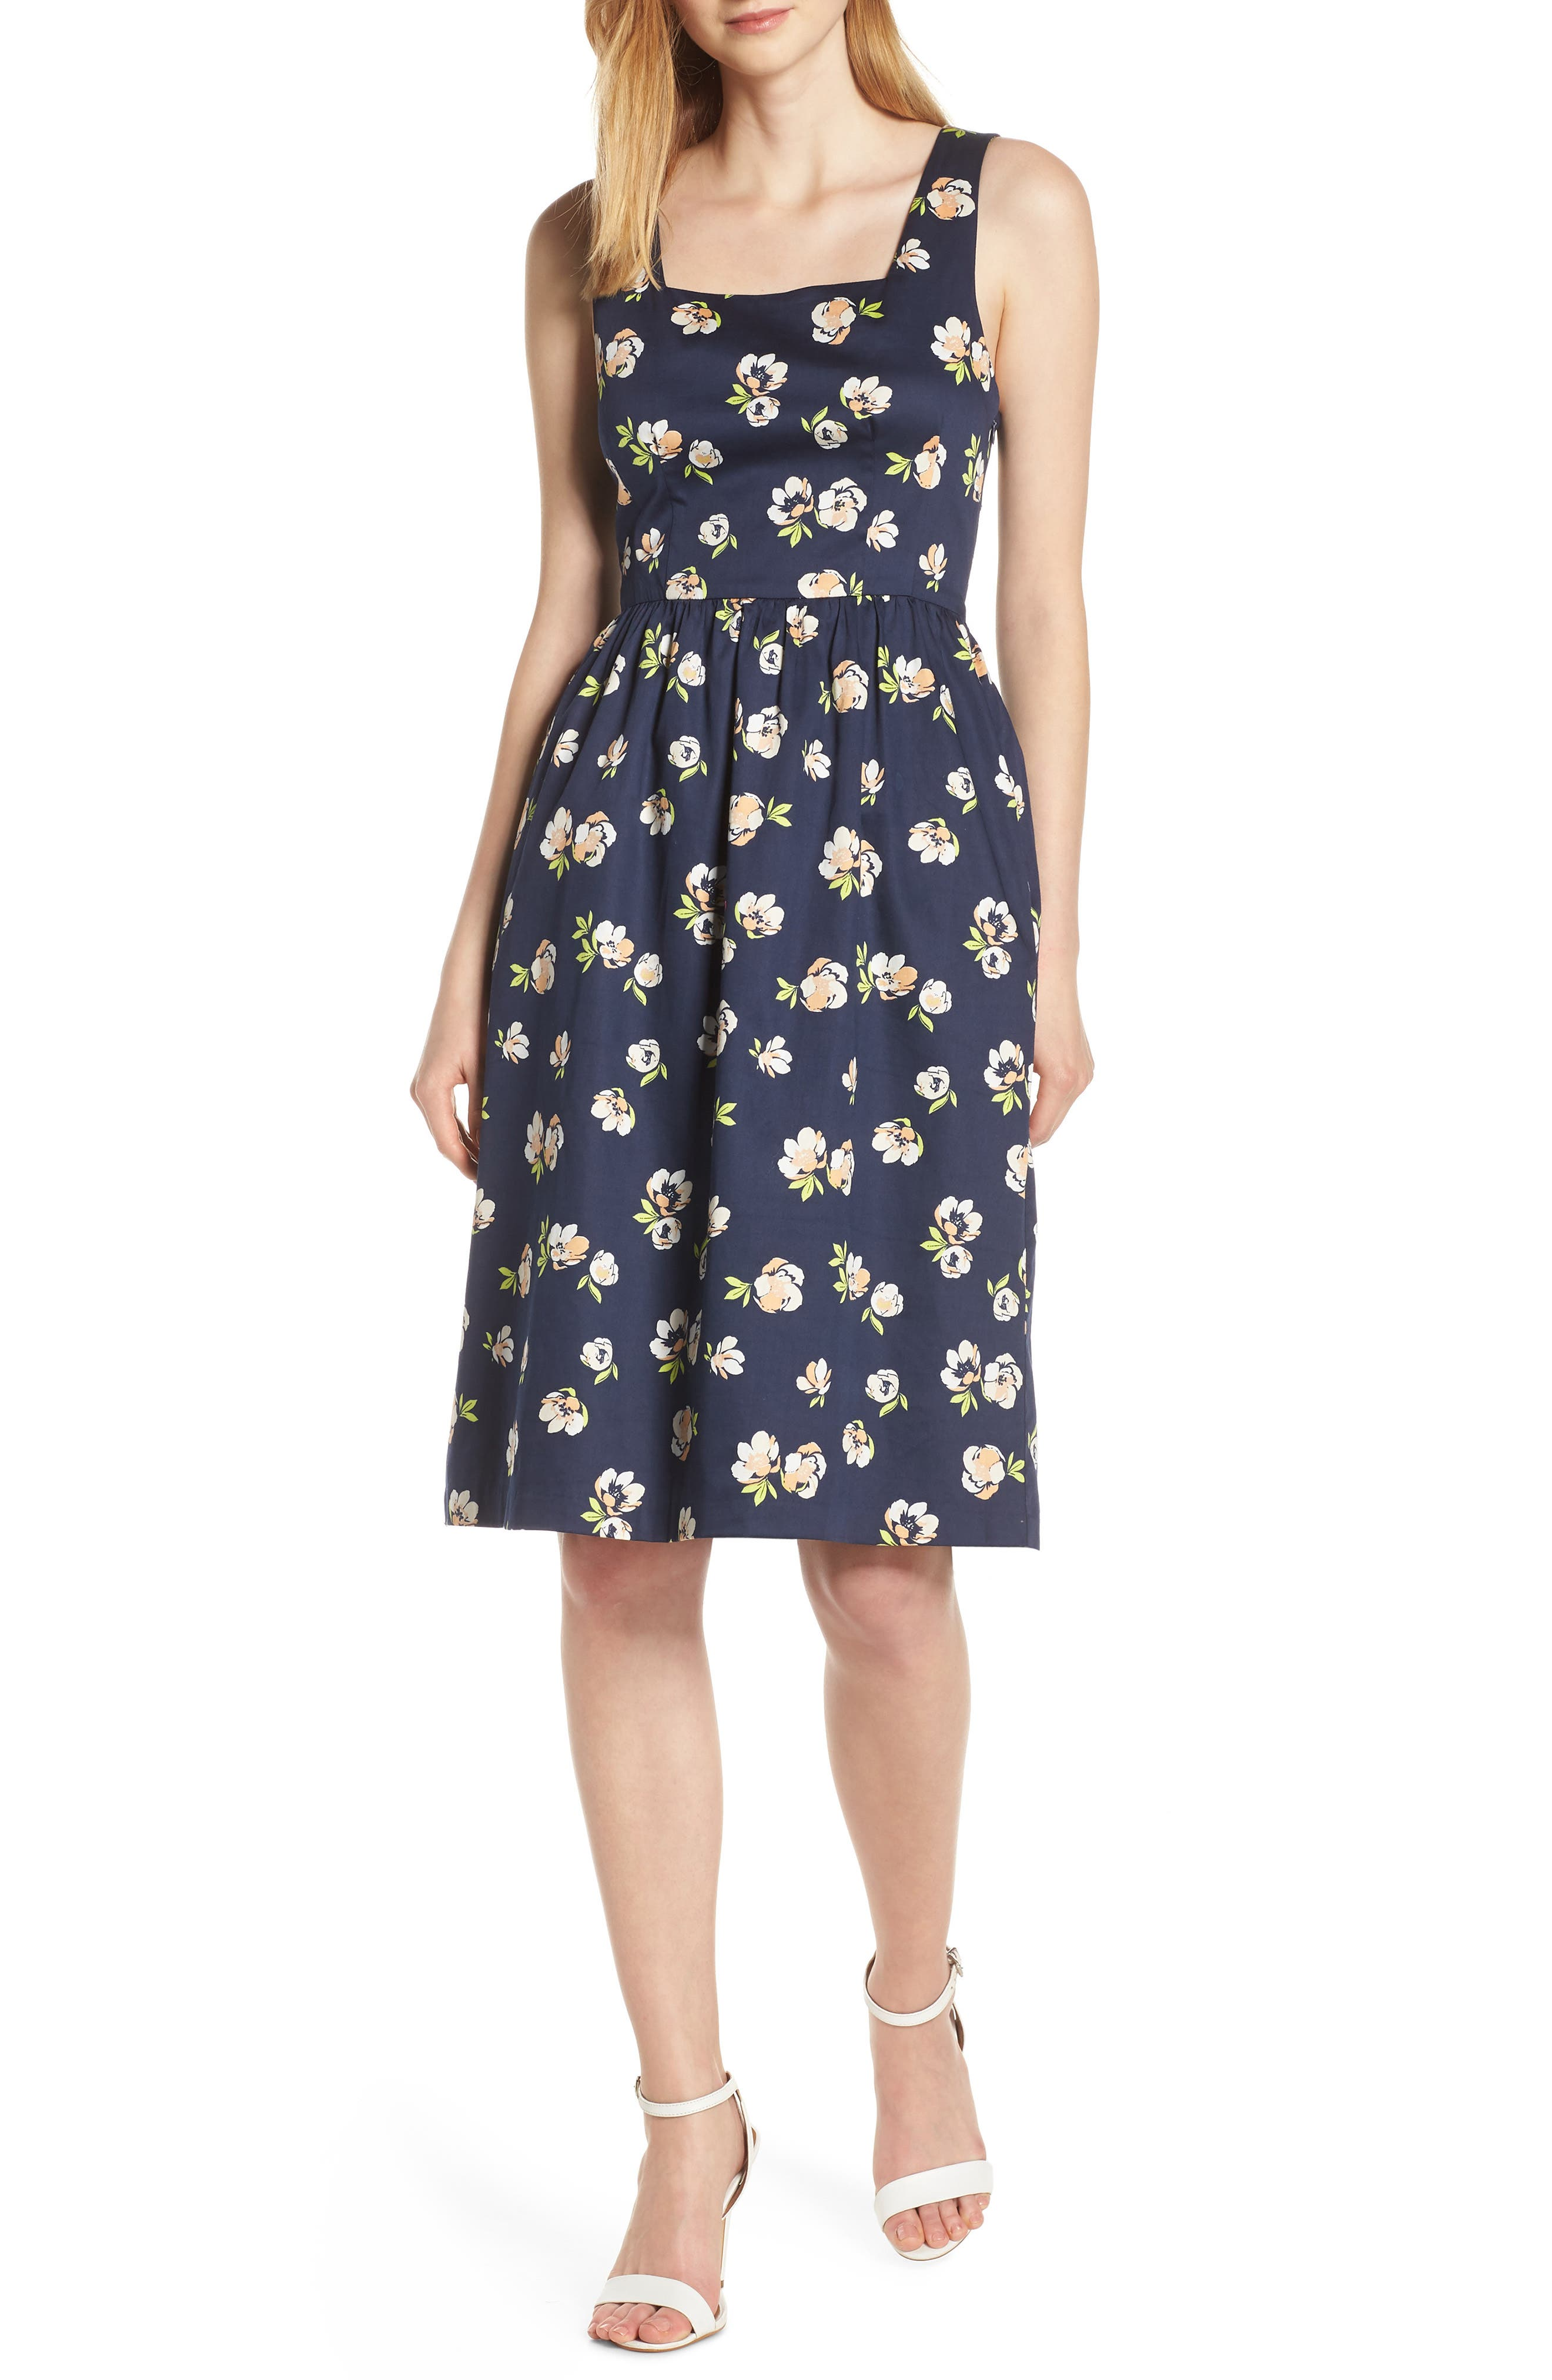 CHARLES HENRY, Sleeveless Fit & Flare Dress, Main thumbnail 1, color, NAVY PEACH FLORAL